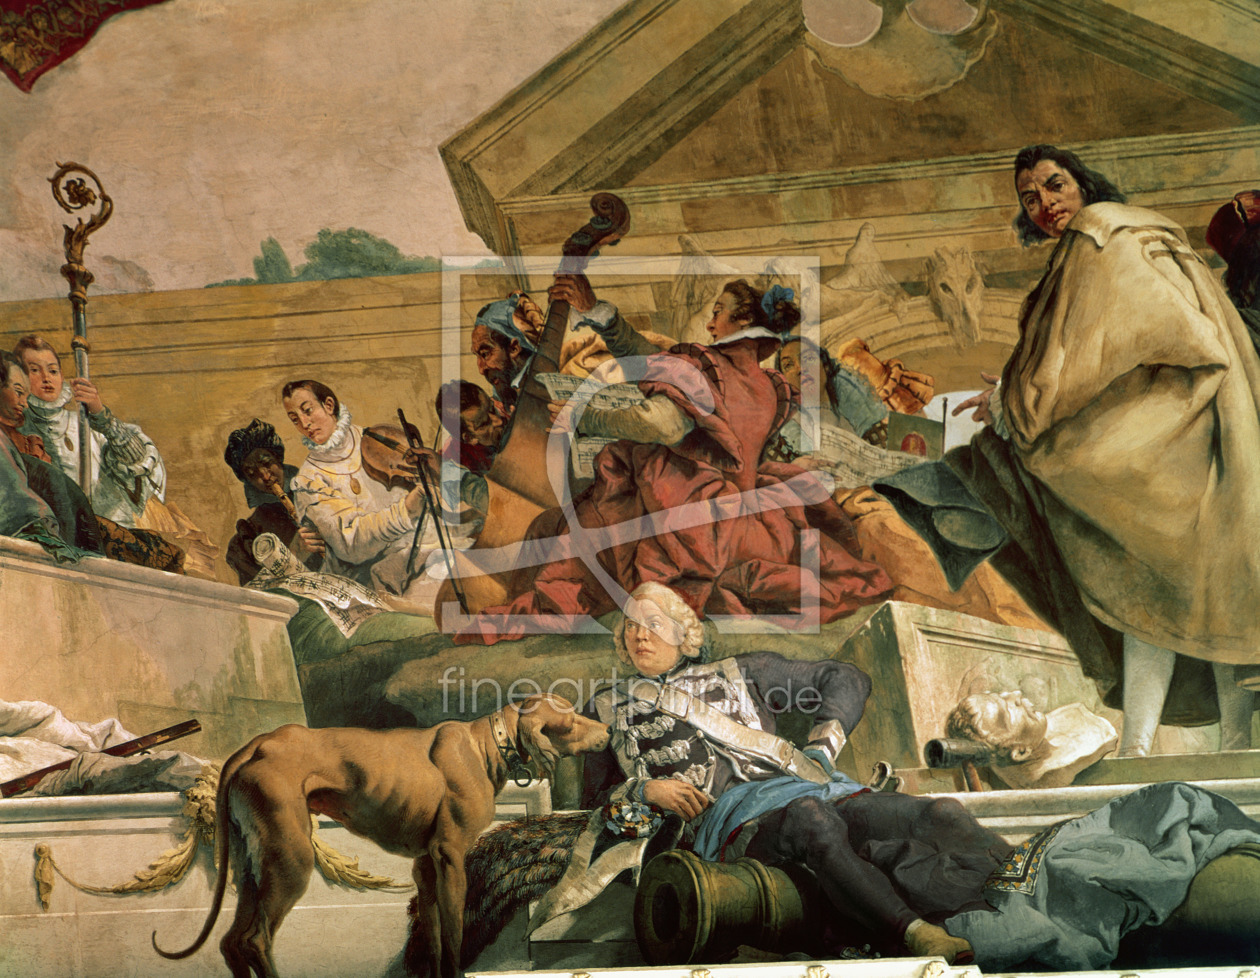 Bild-Nr.: 31002427 Europe, one of the Four Continents from the ceiling of the 'Treppenhaus', 1750-5 erstellt von Tiepolo, Giovanni Battista (Giambattista)